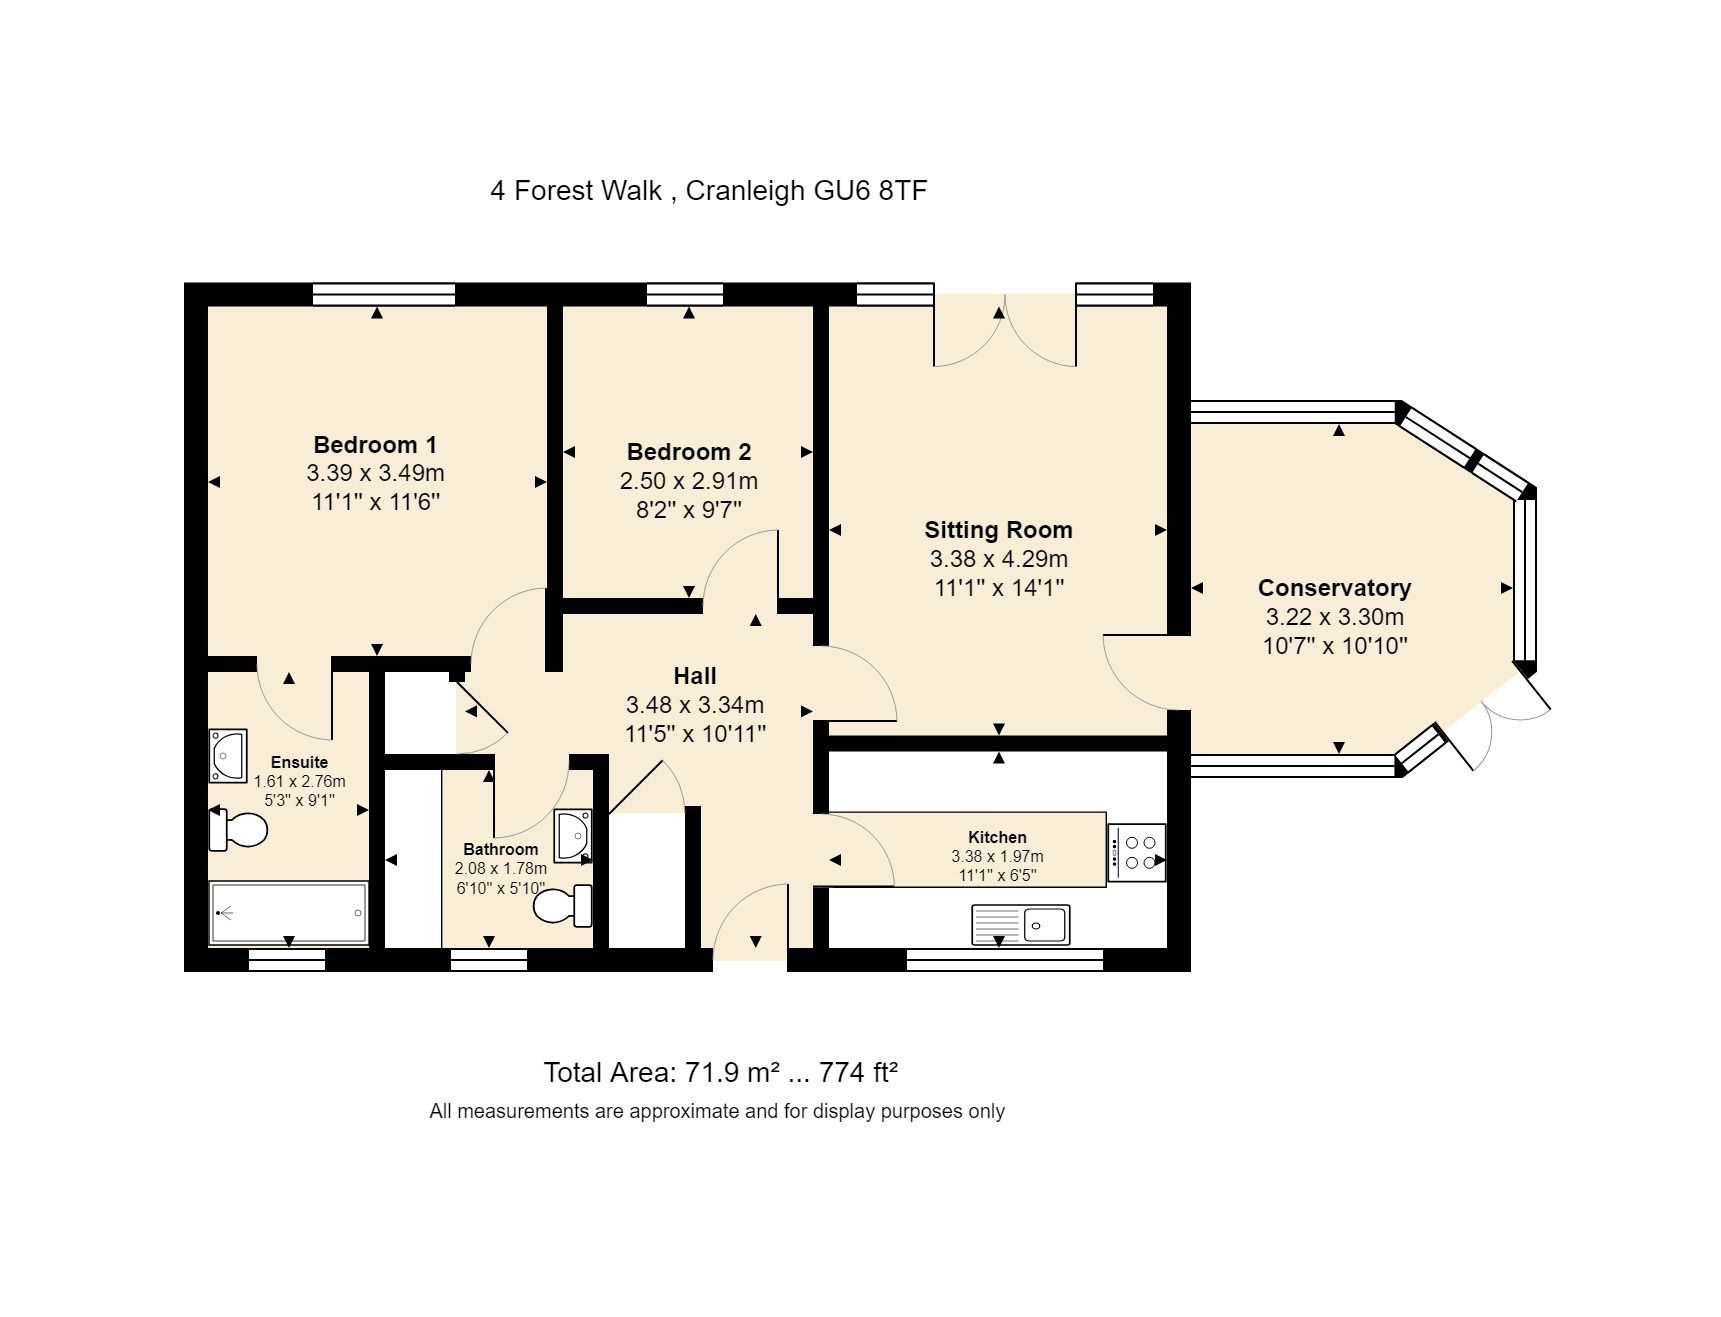 4 Forest Walk Floorplan